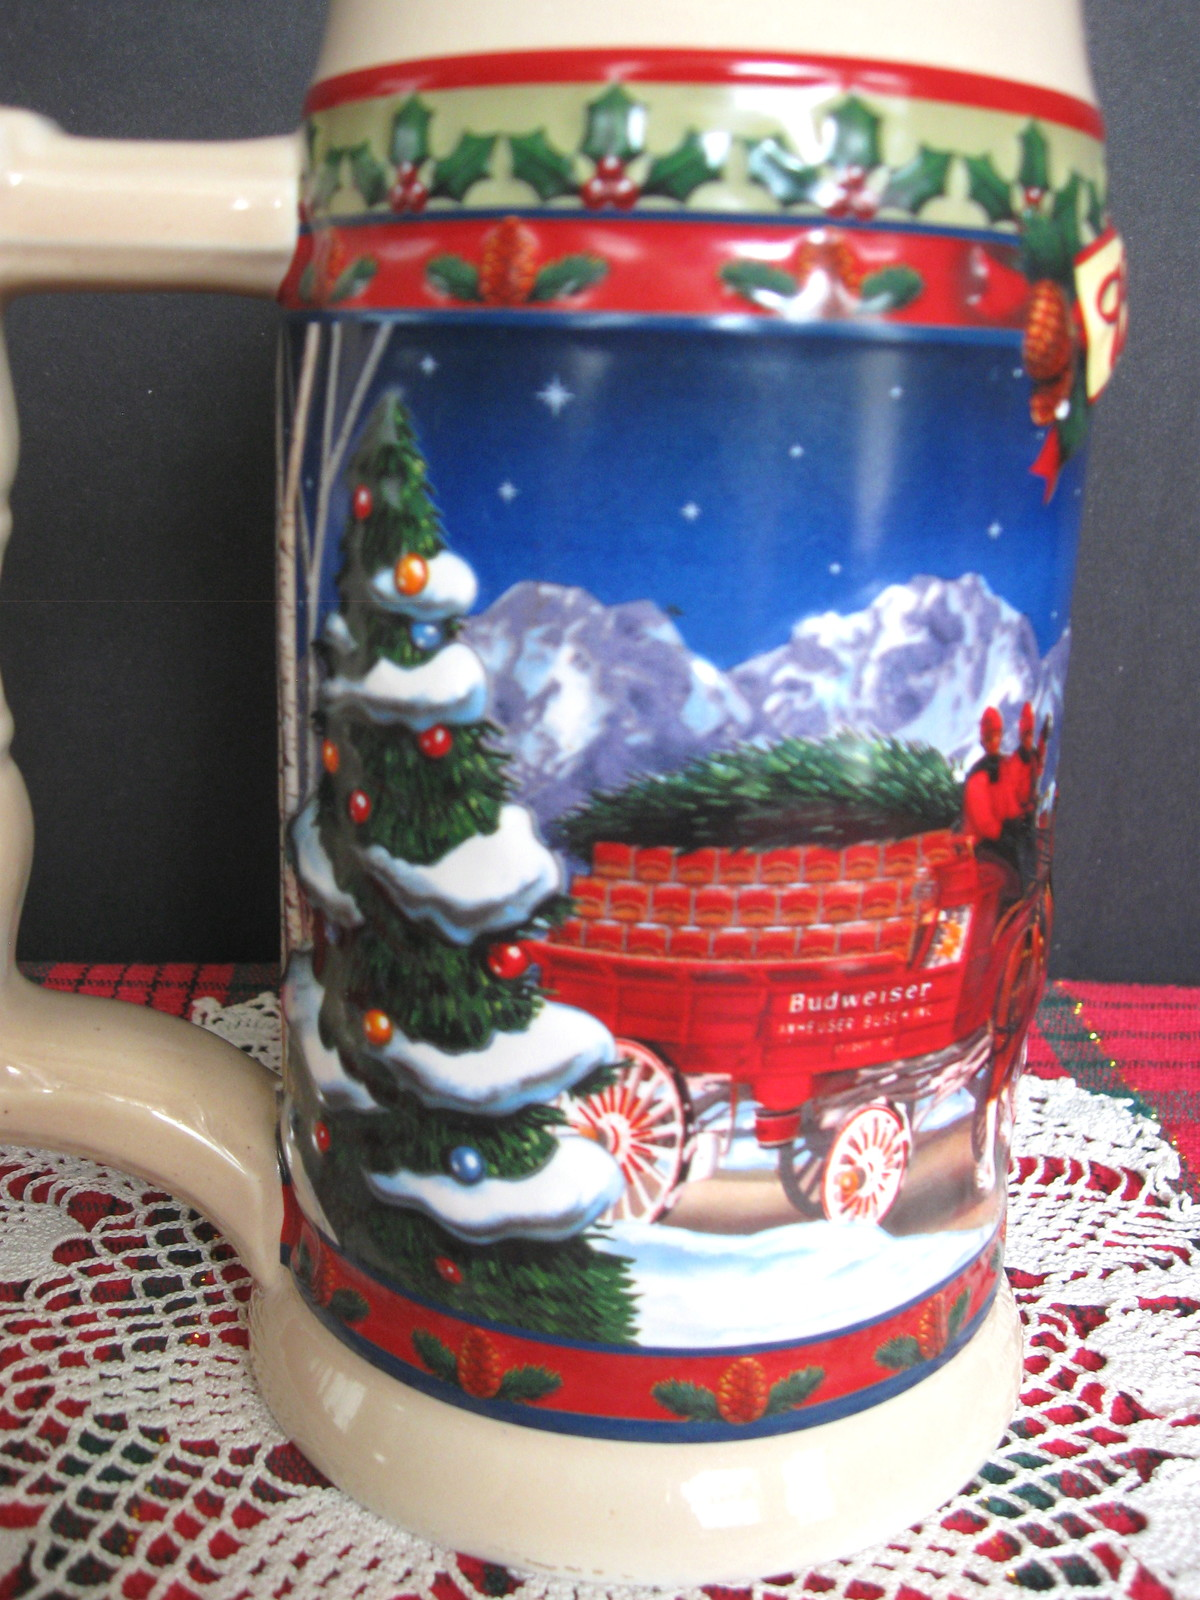 2003 Budweiser Holiday Stein - Old Towne Holiday - No. CS560 - No Box image 5